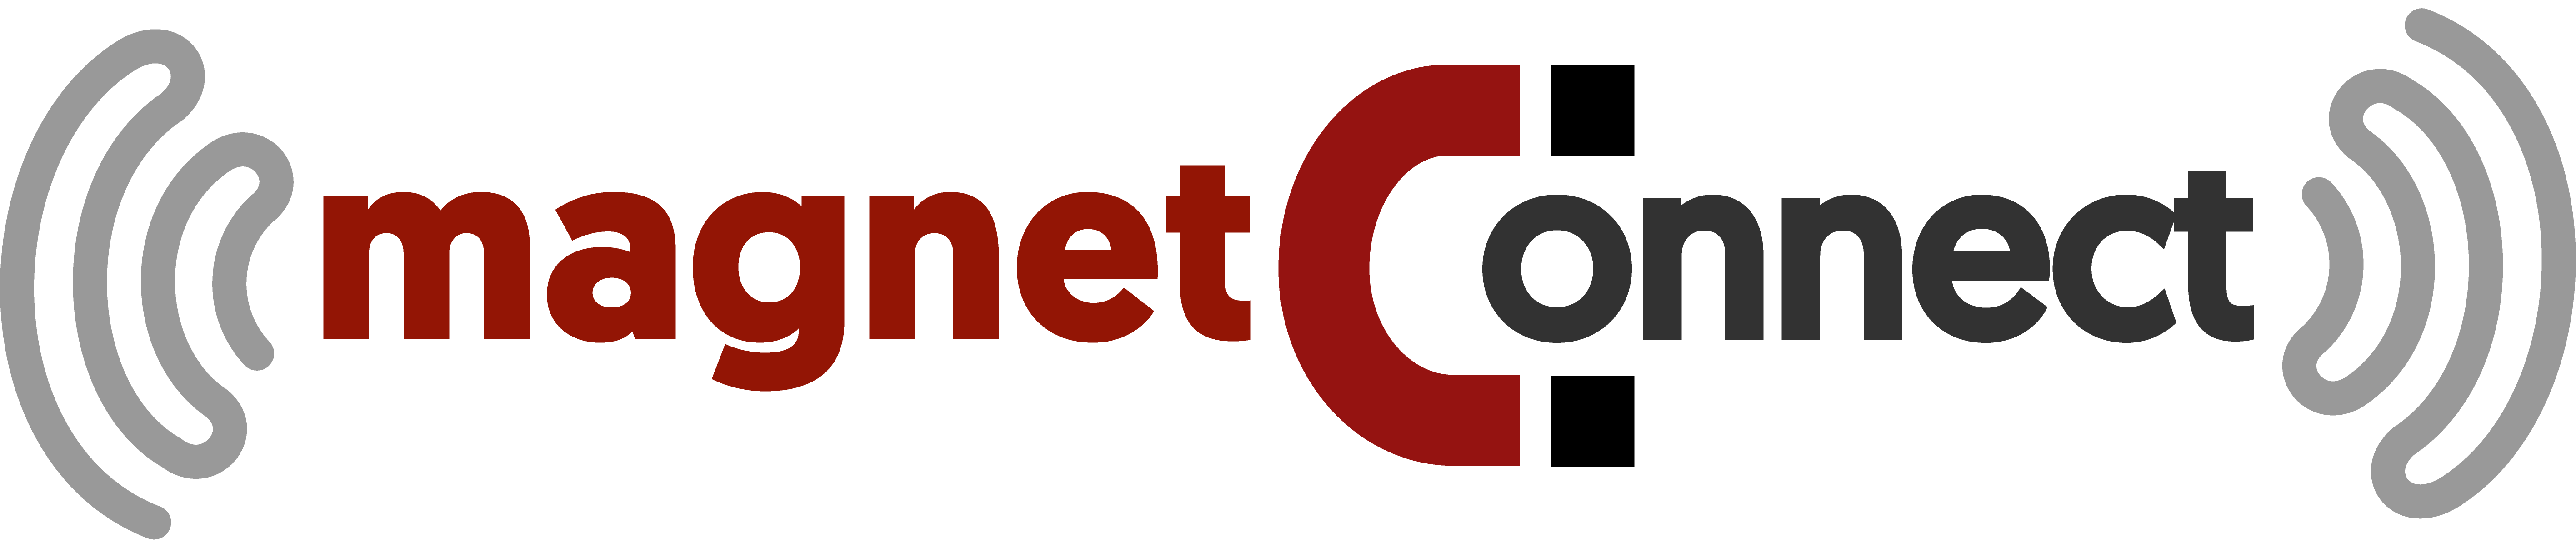 Magnet Connect Logo